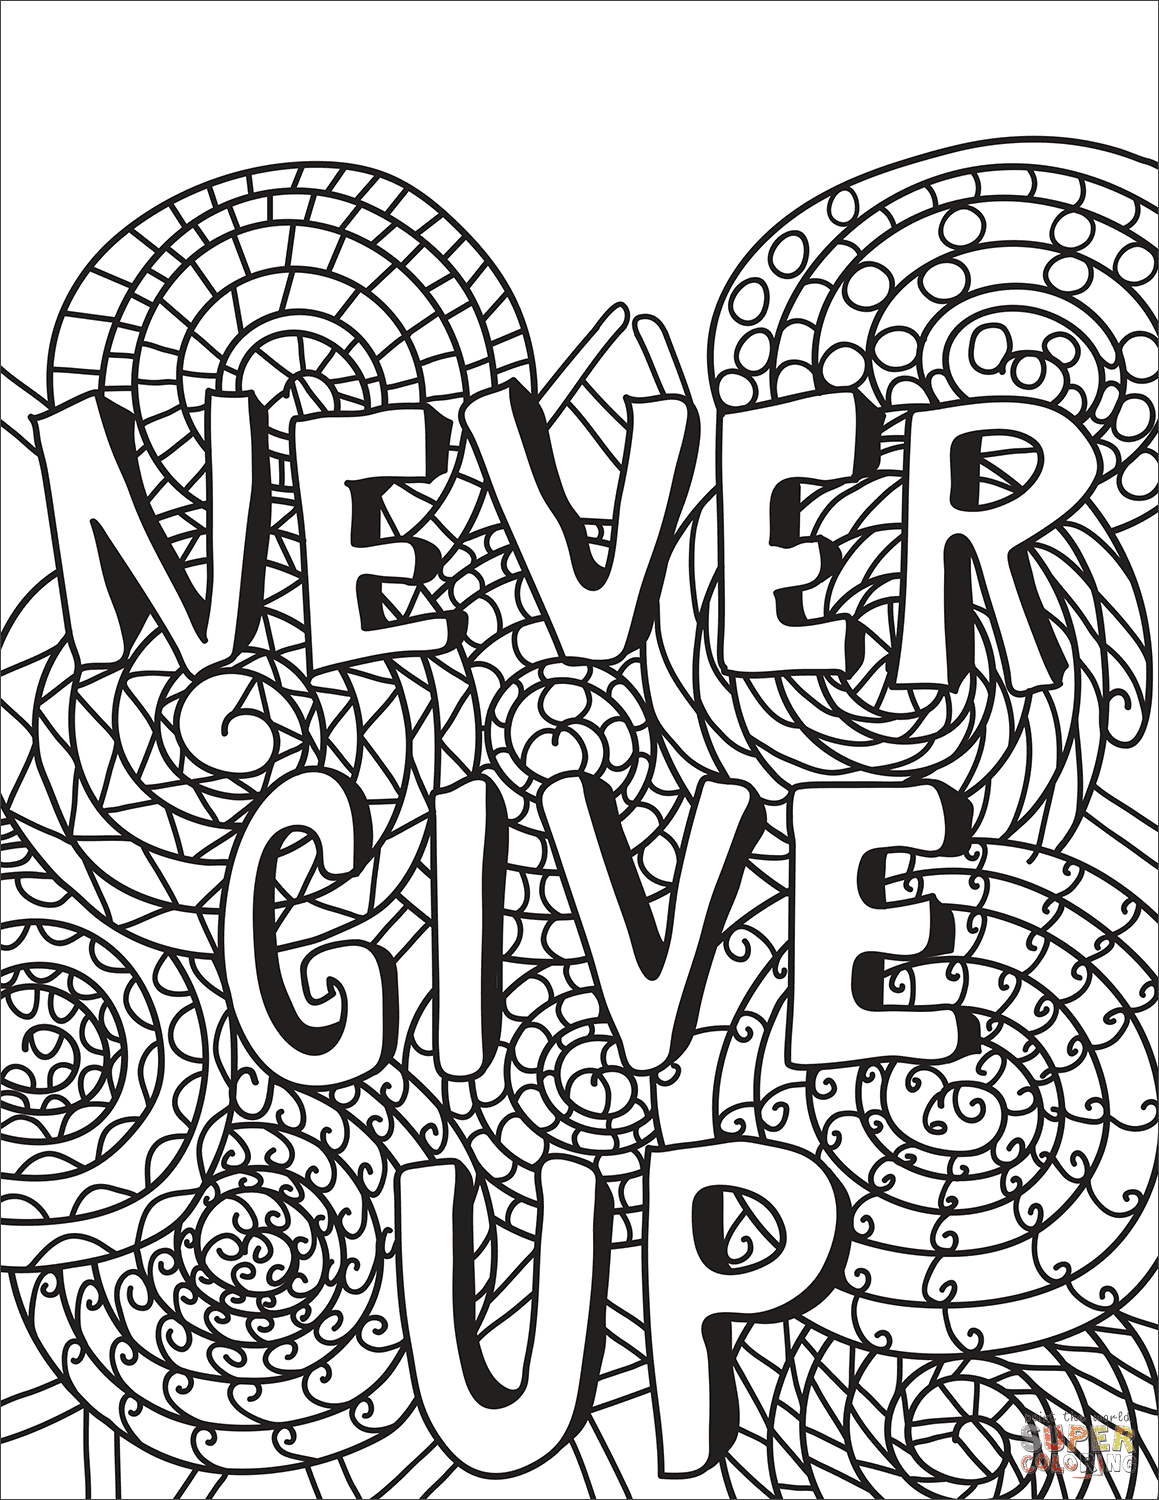 Never Give Up coloring page | Free Printable Coloring Pages